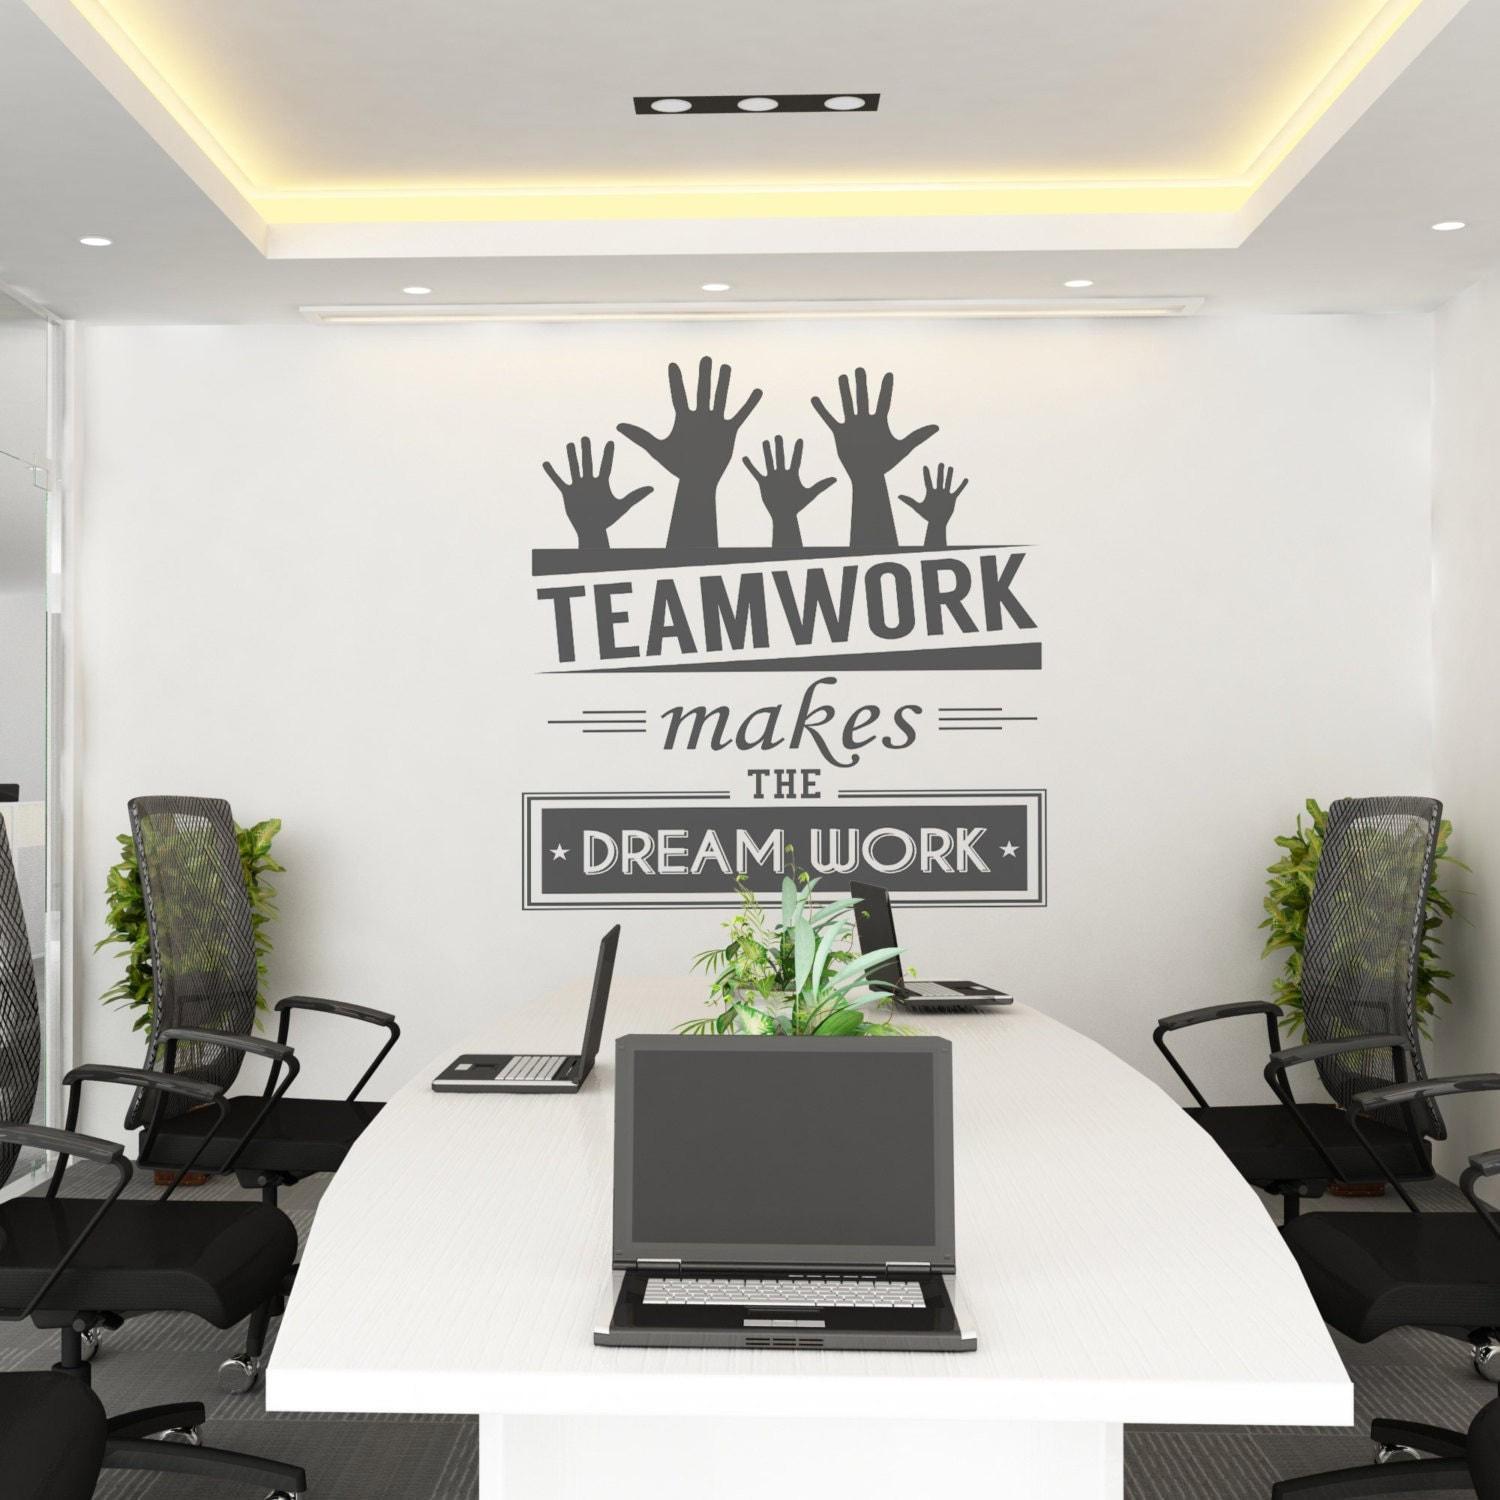 Teamwork makes the dream work teamwork office wall art for Home decorators corporate office